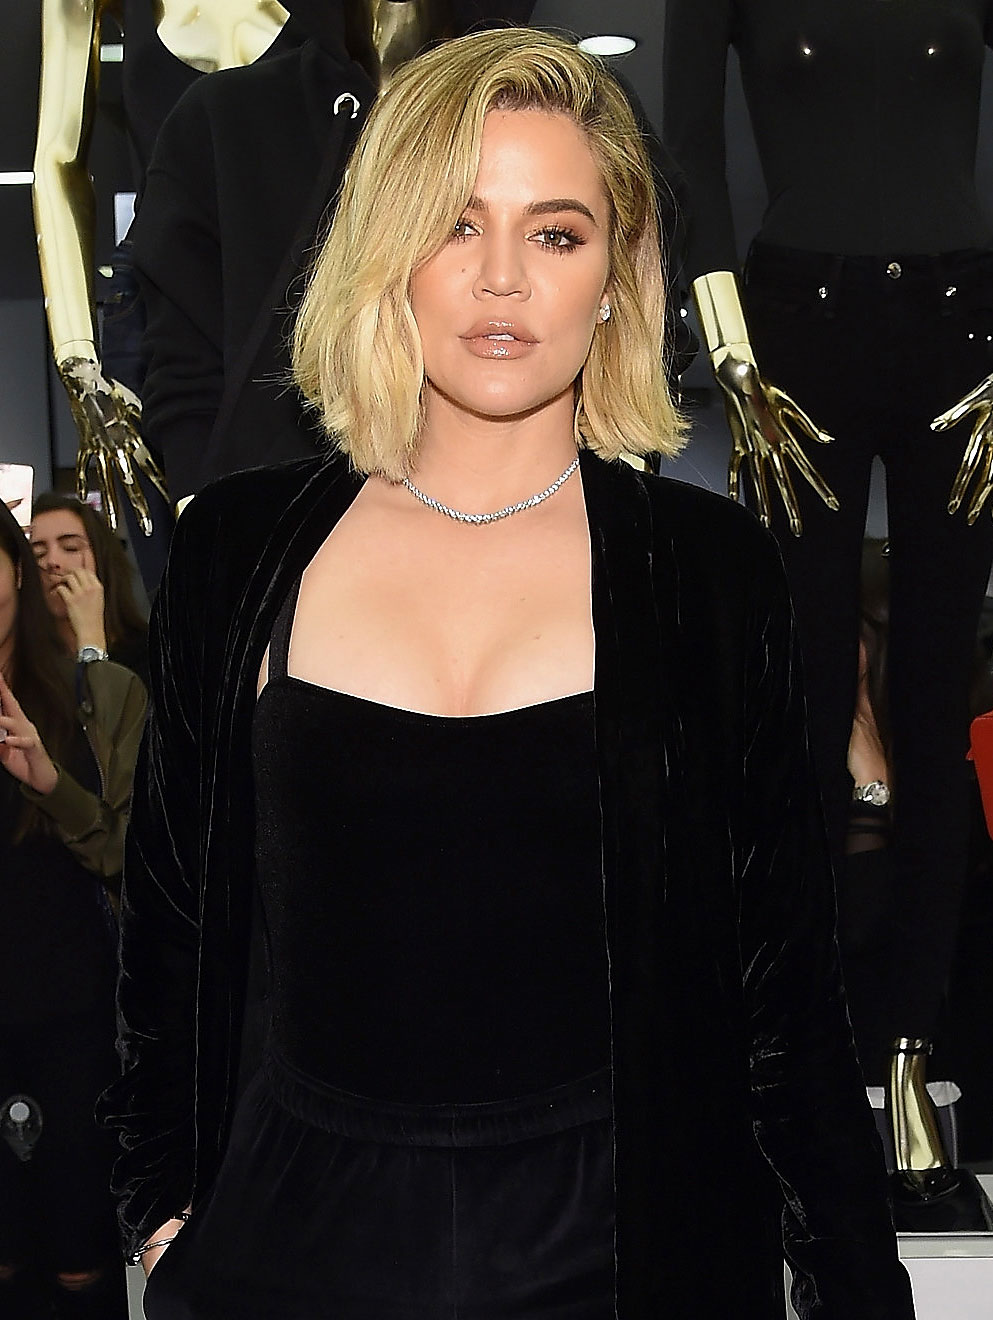 Khloé Kardashian Plans to Mend Your Broken Heart with RevengeBody' recommend